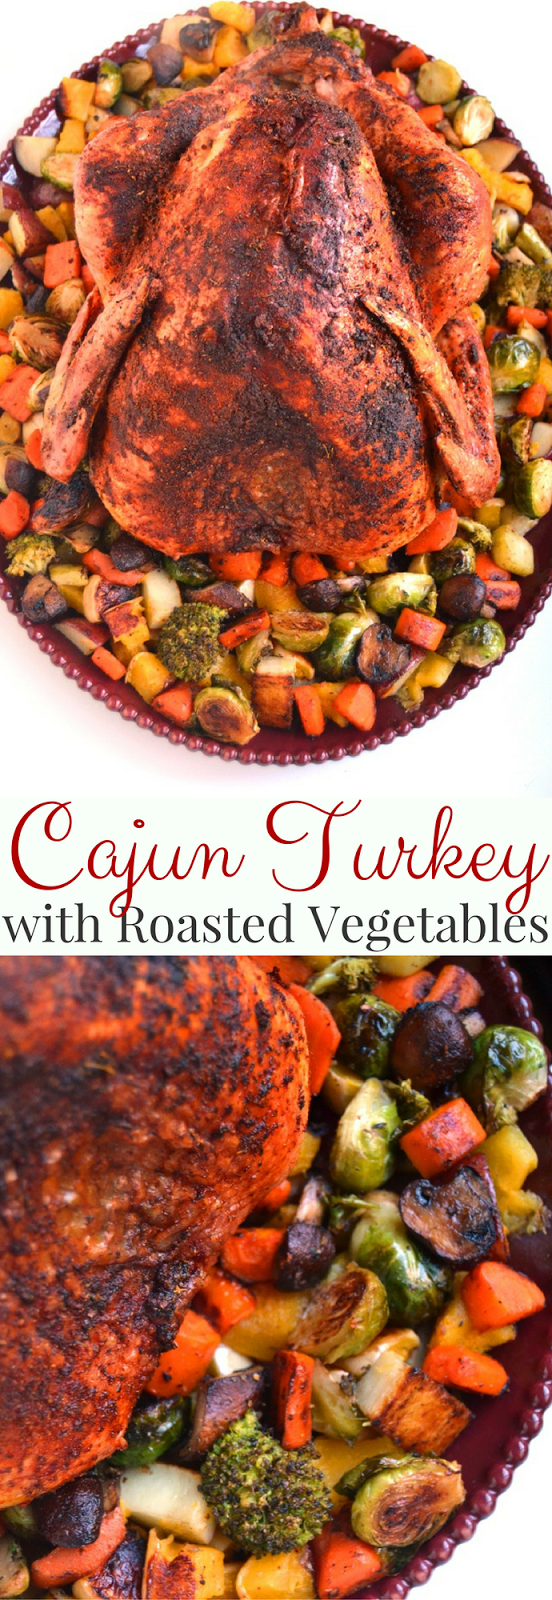 Cajun Turkey with Roasted Vegetables features a dry-rubbed, slow cooked cajun turkey along with roasted butternut squash, Brussels sprouts, carrots, broccoli and red potatoes! www.nutritionistreviews.com